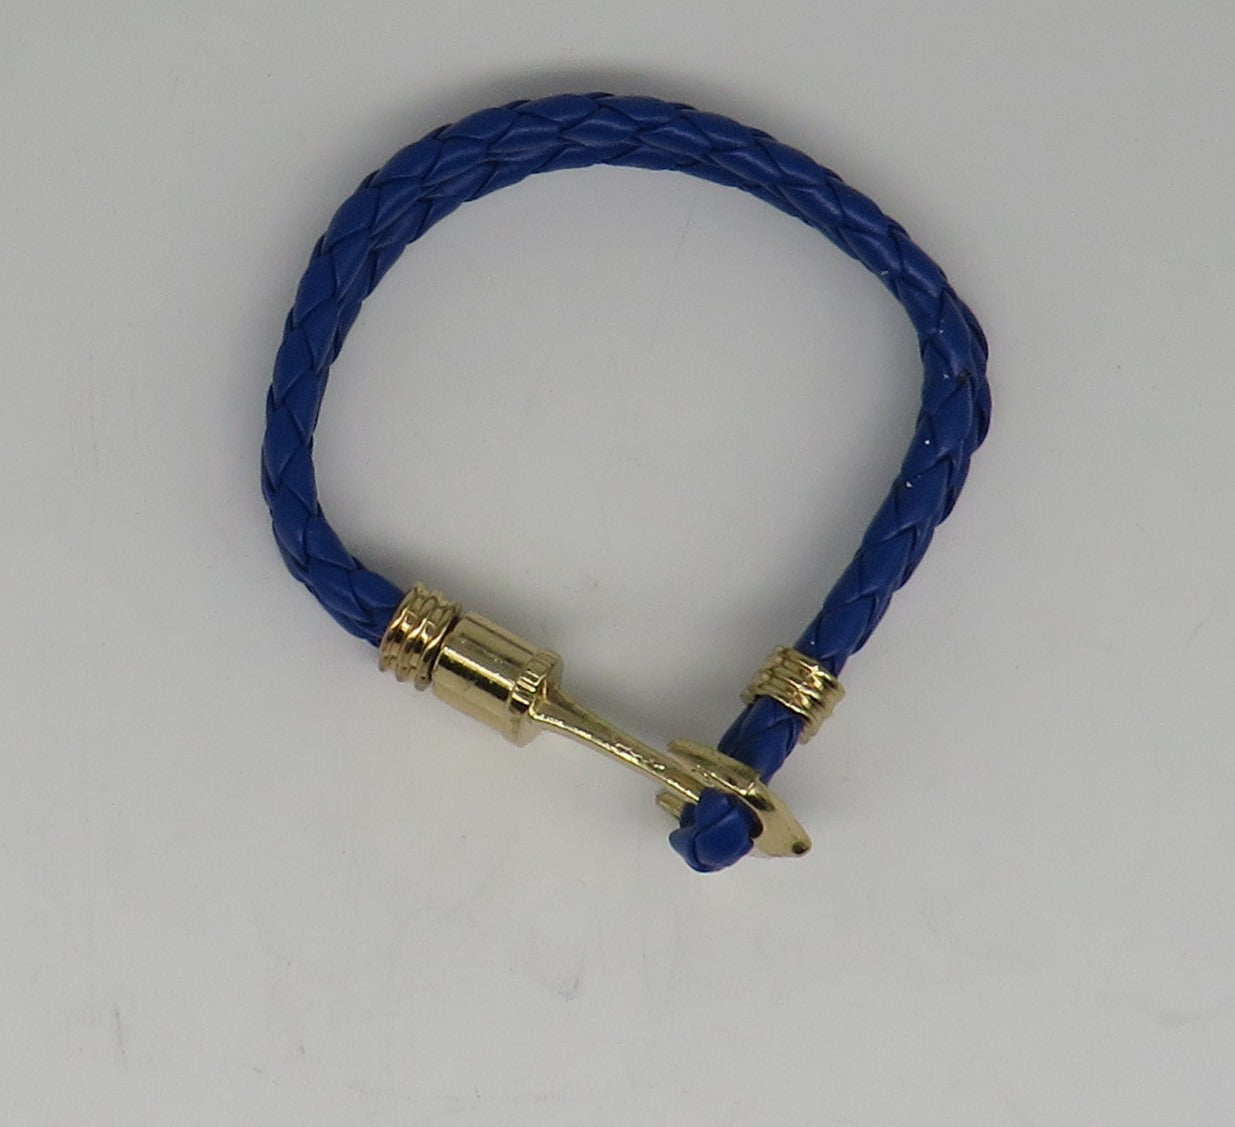 Unisex Leather Handmade Braided Cuff Anchor Bangle Bracelet Wristband Blue-Gold